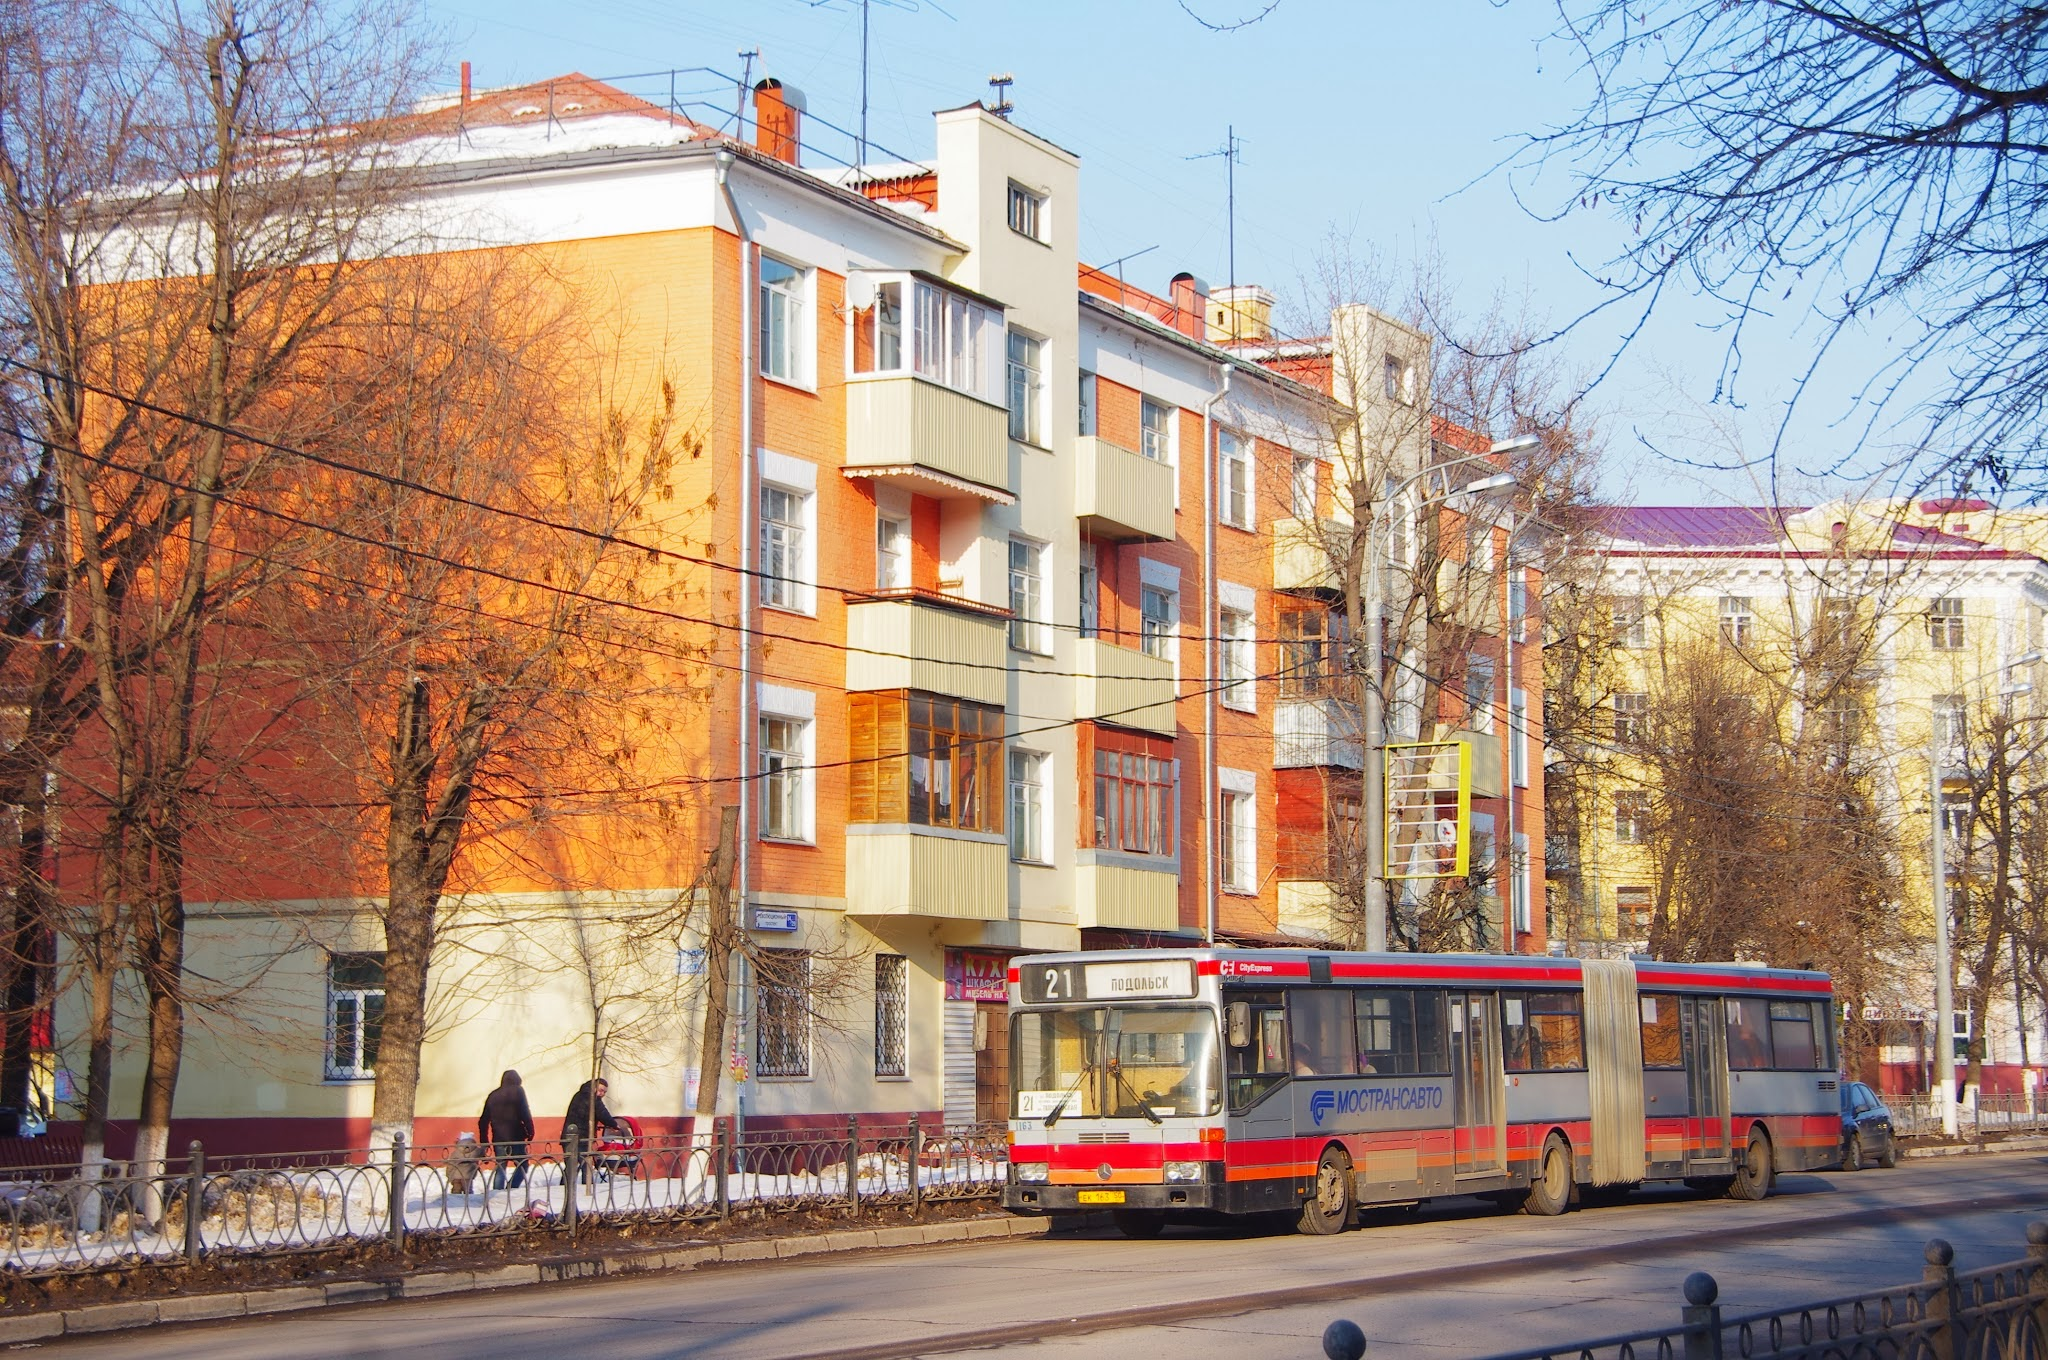 How to get to Moscow - Podolsk